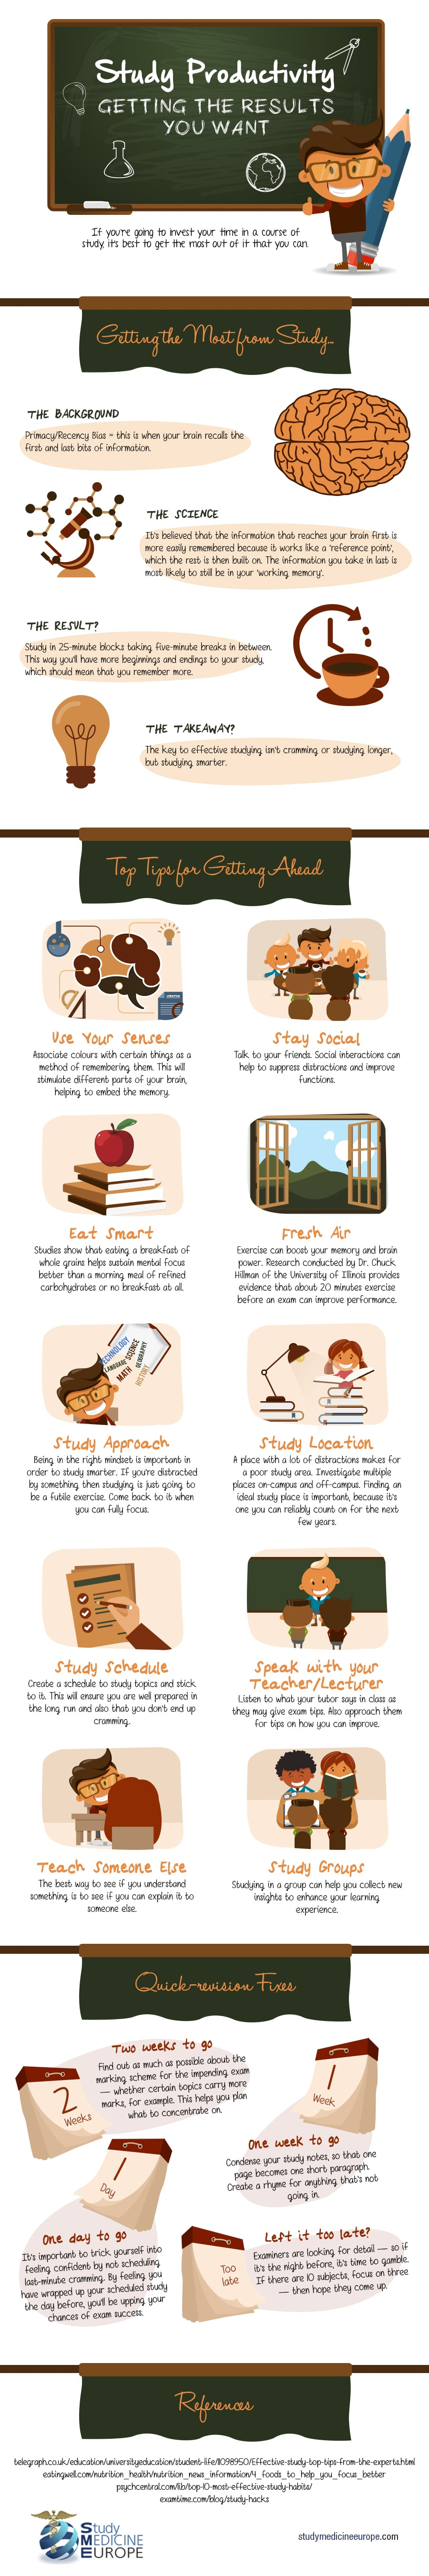 Study-Smart-An-Infographic